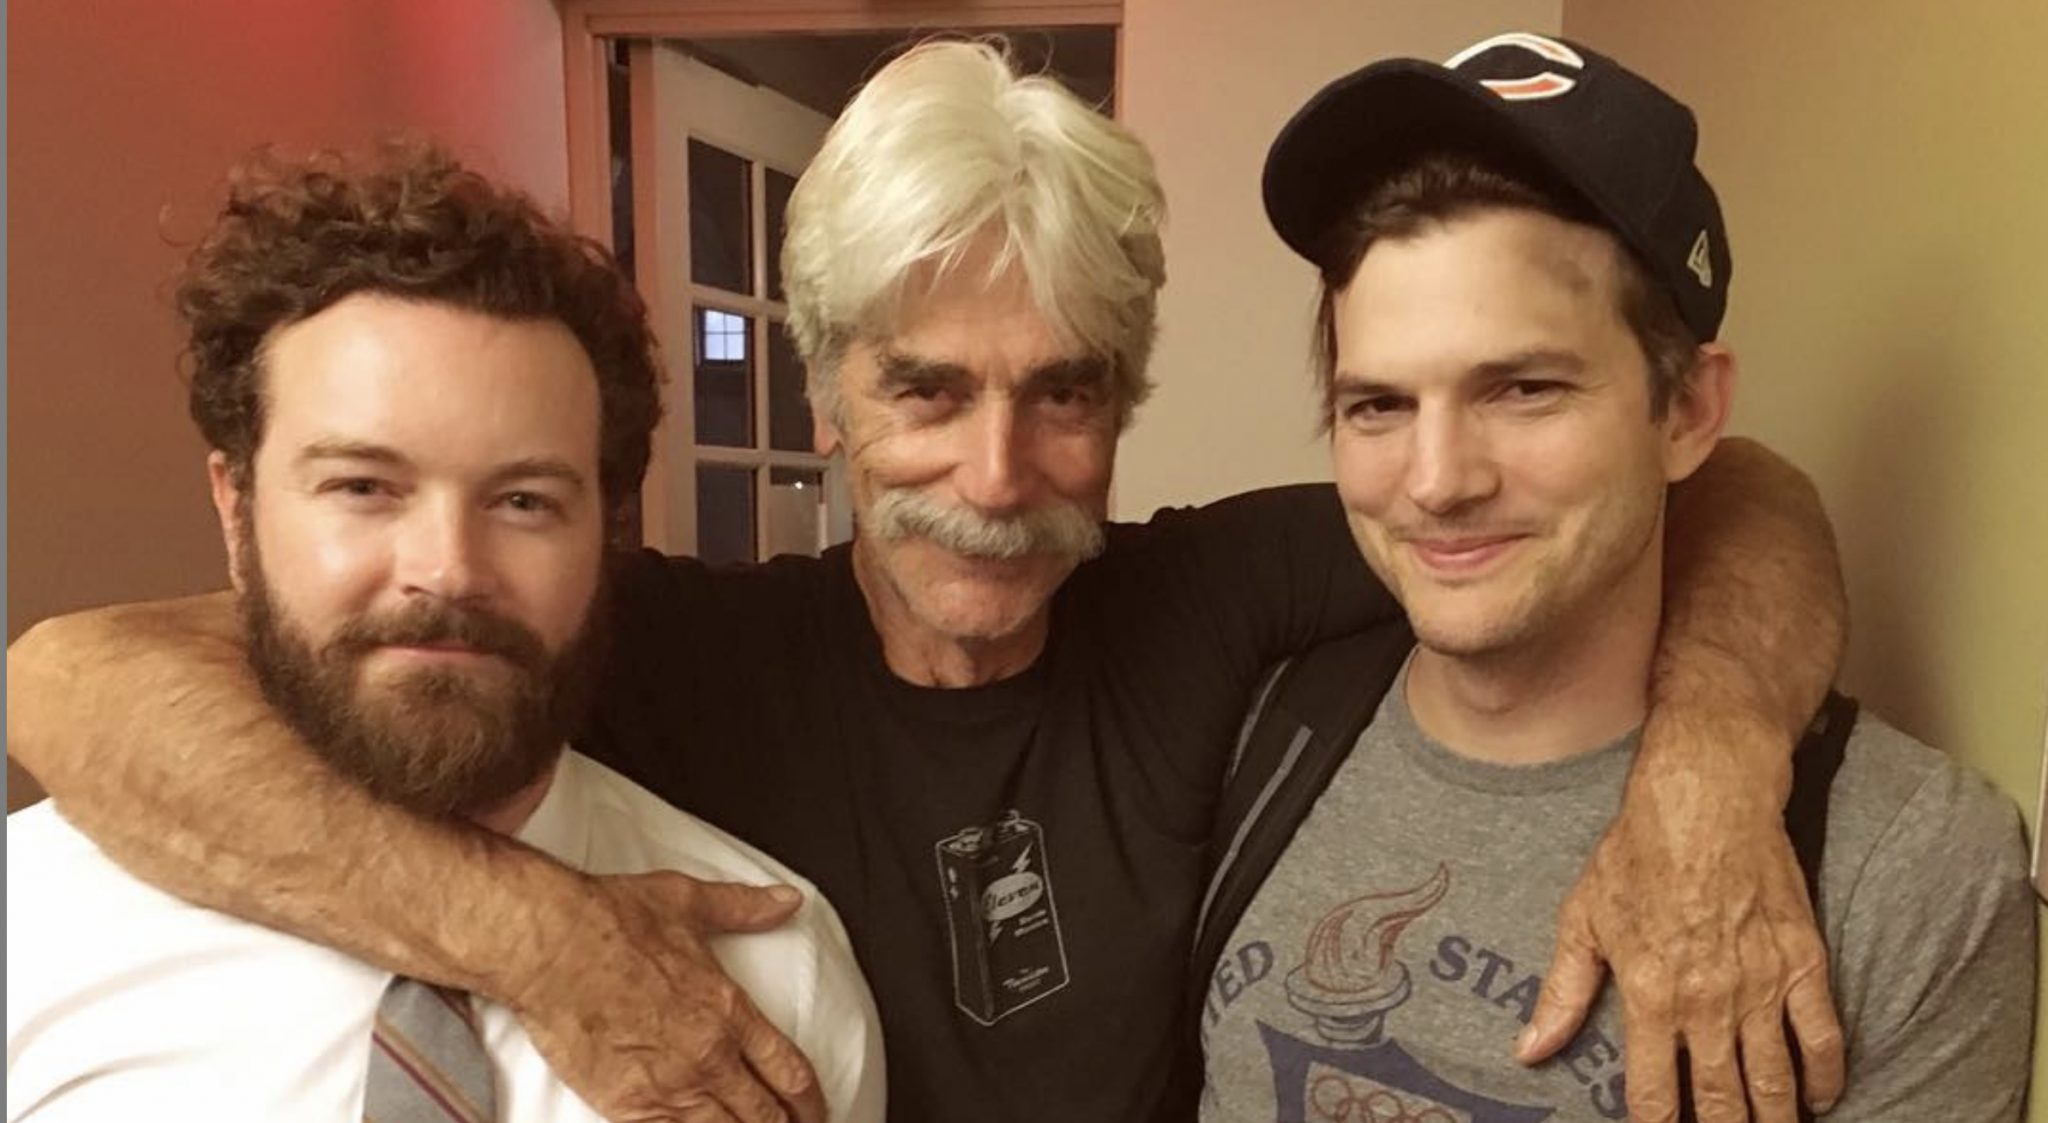 Danny Masterson, Rooster, Beau, Ashton Kutcher, Colt, The Ranch-https://www.instagram.com/p/BKMM-gHheXj/Sam Elliott,